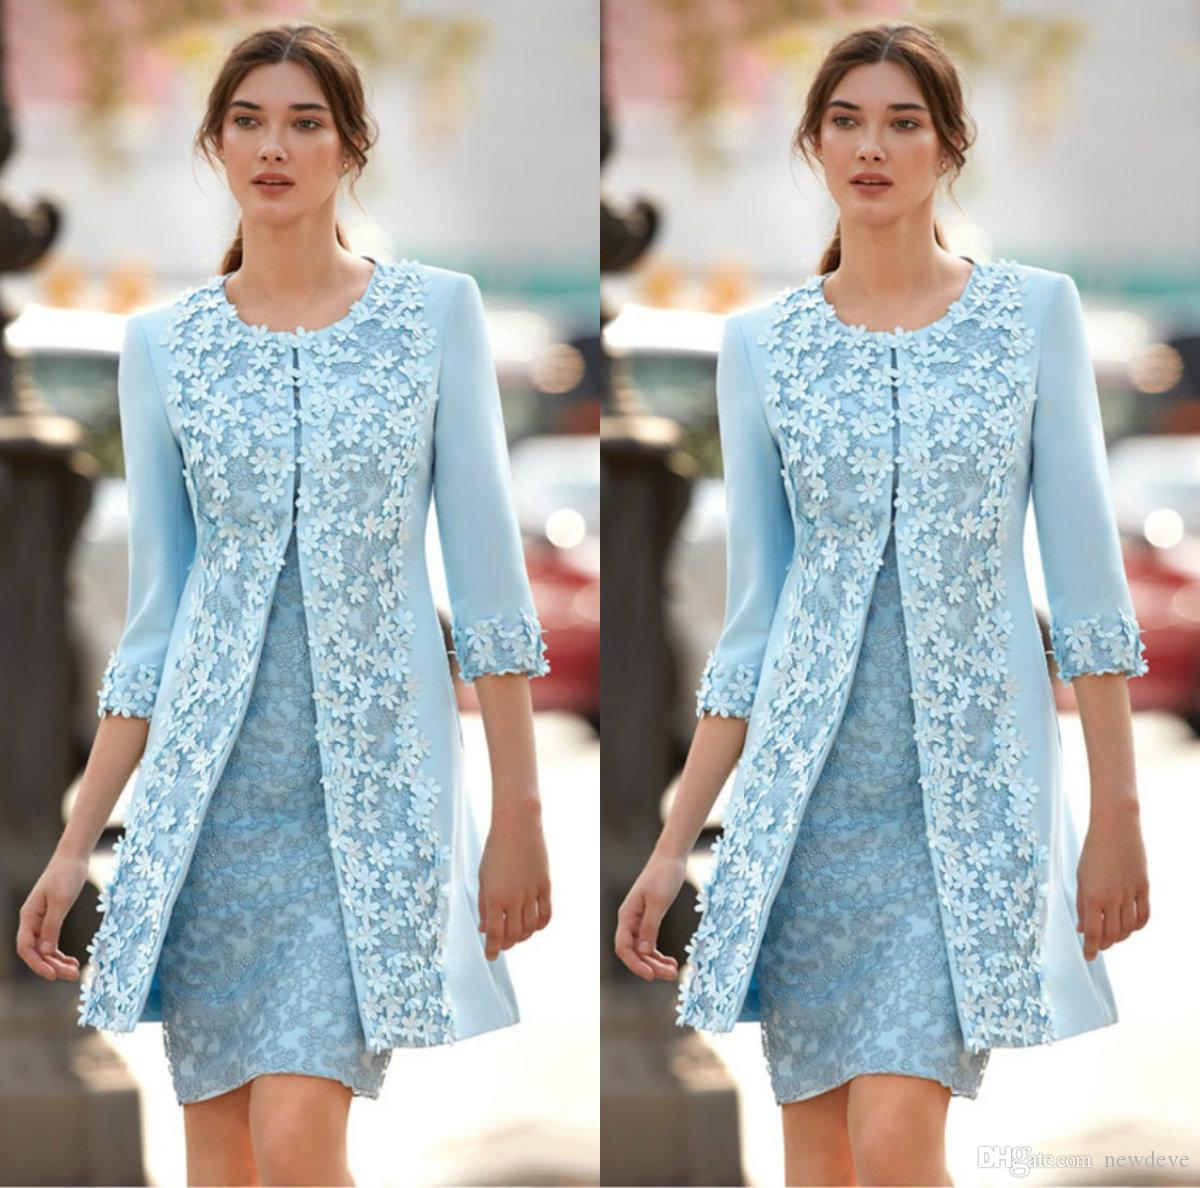 Two Pieces Light Blue Mother Of Bride Dresses 3D Applique Jewel 3/4 Sleeve Knee Length Mother Dress Capped